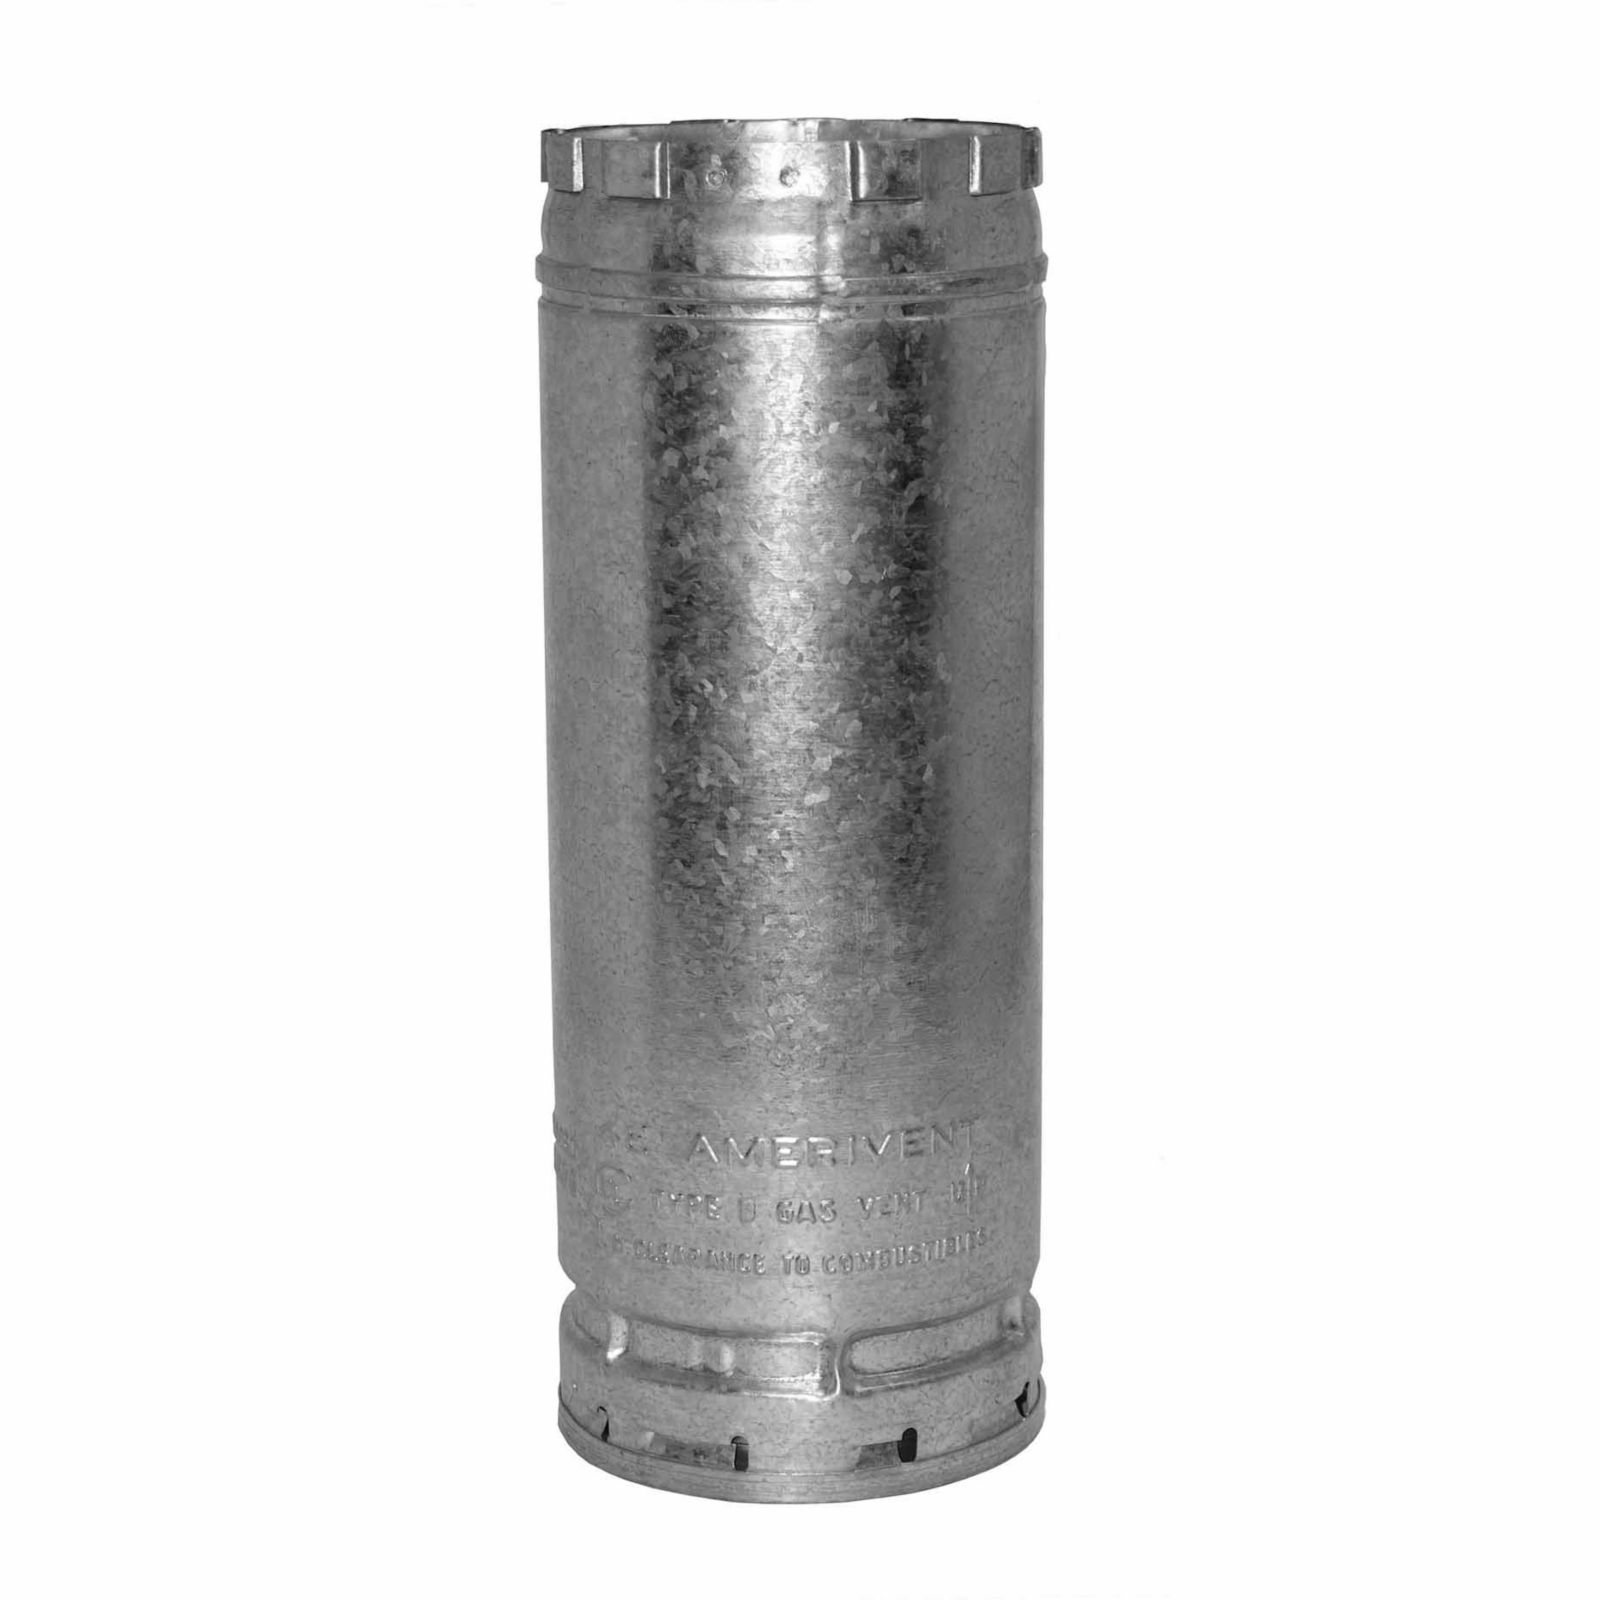 "AmeriVent 6E12 - Pipe Section Type B Gas Vent, 6"" Round X 12"" Length"